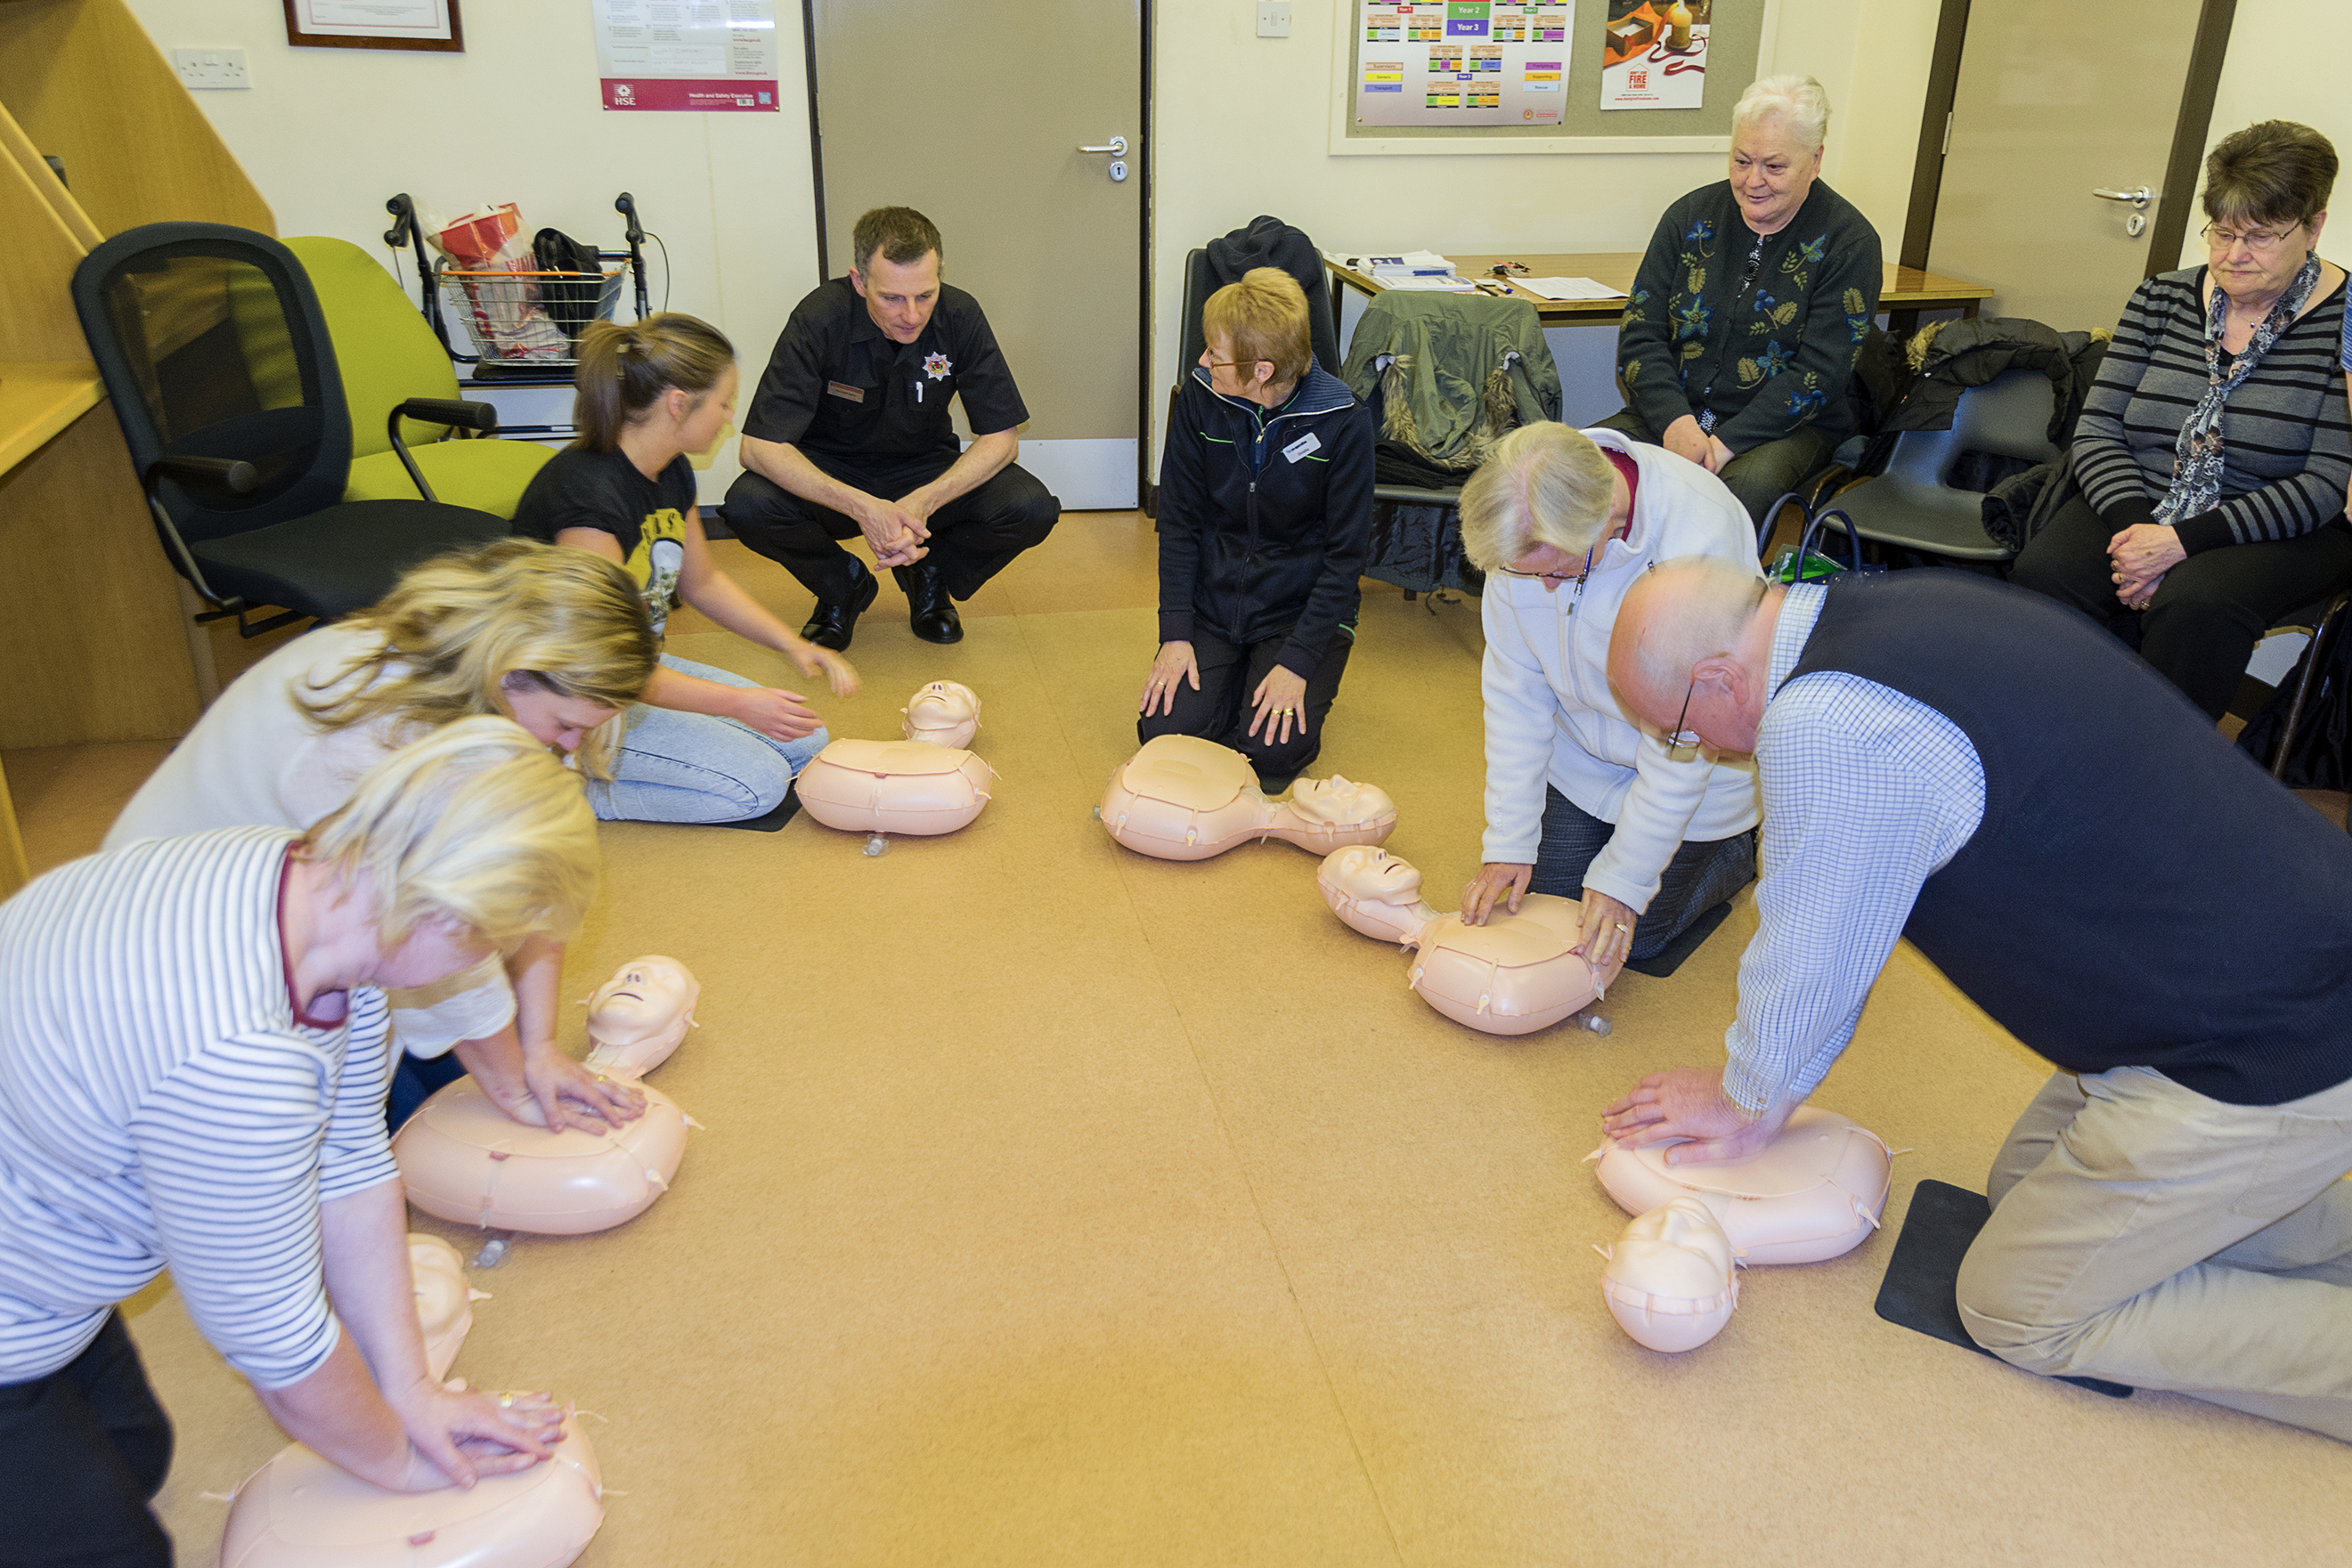 Successful CPR at Denny fire station